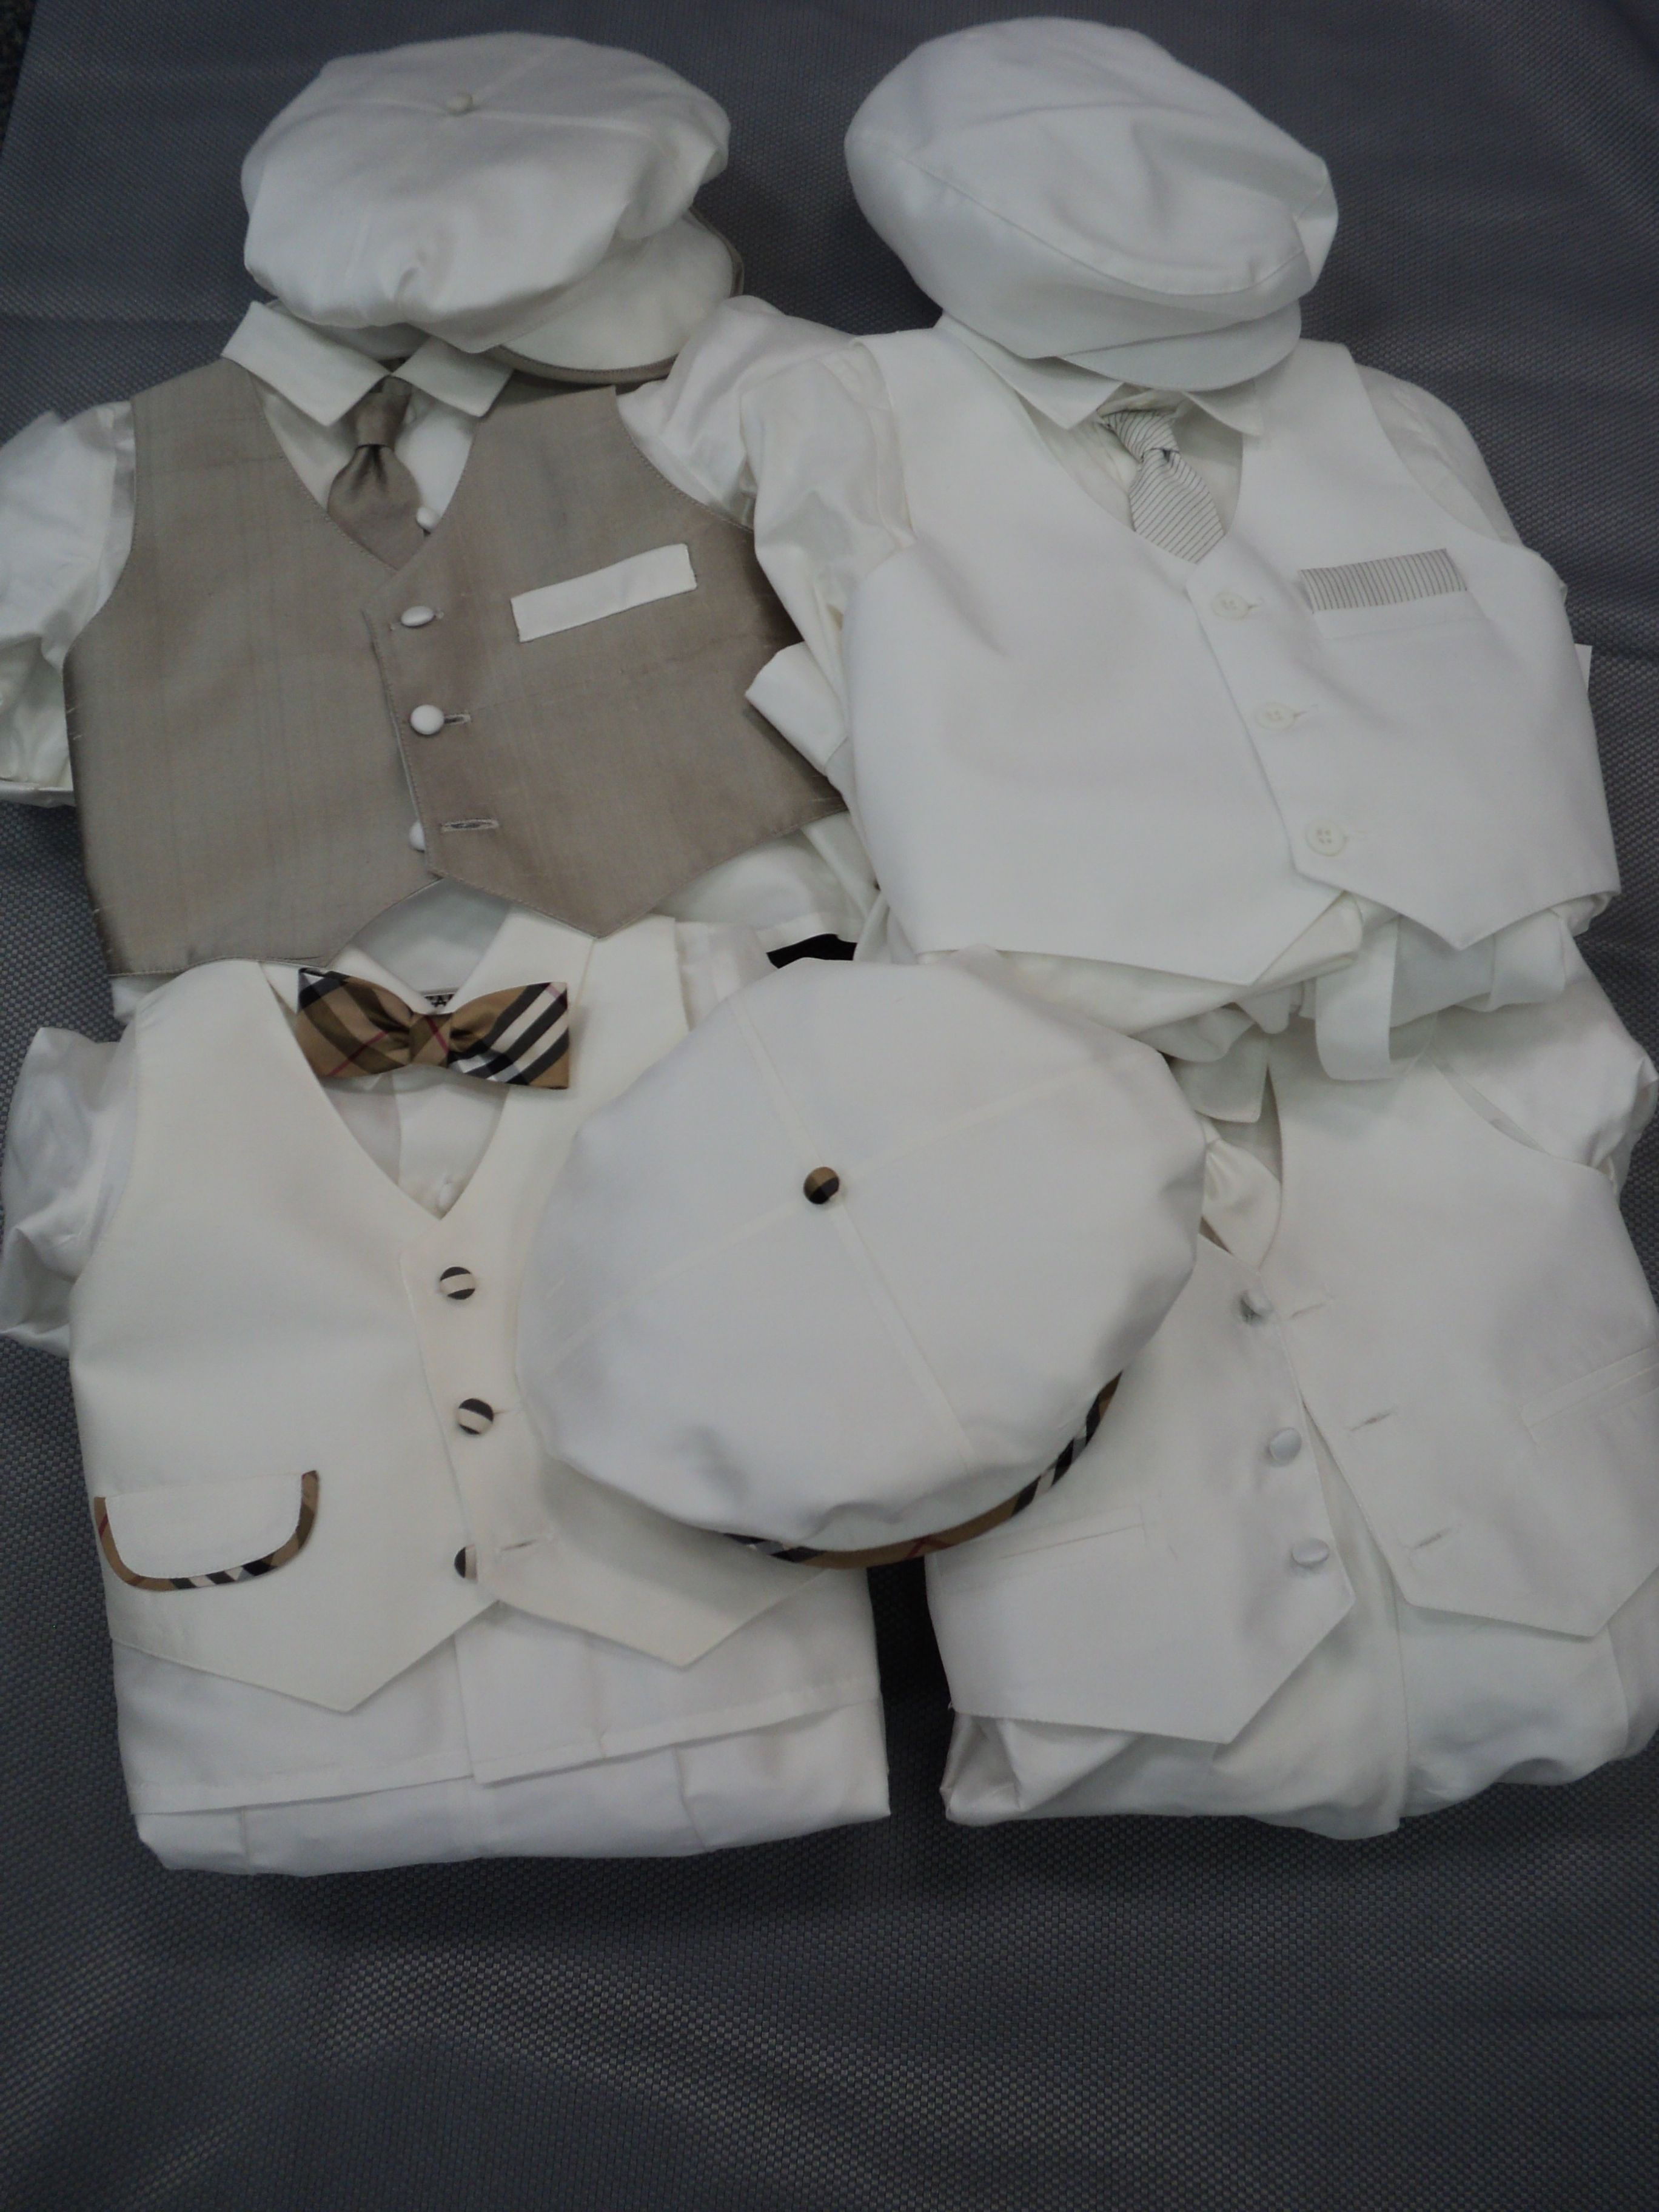 baptism outfits